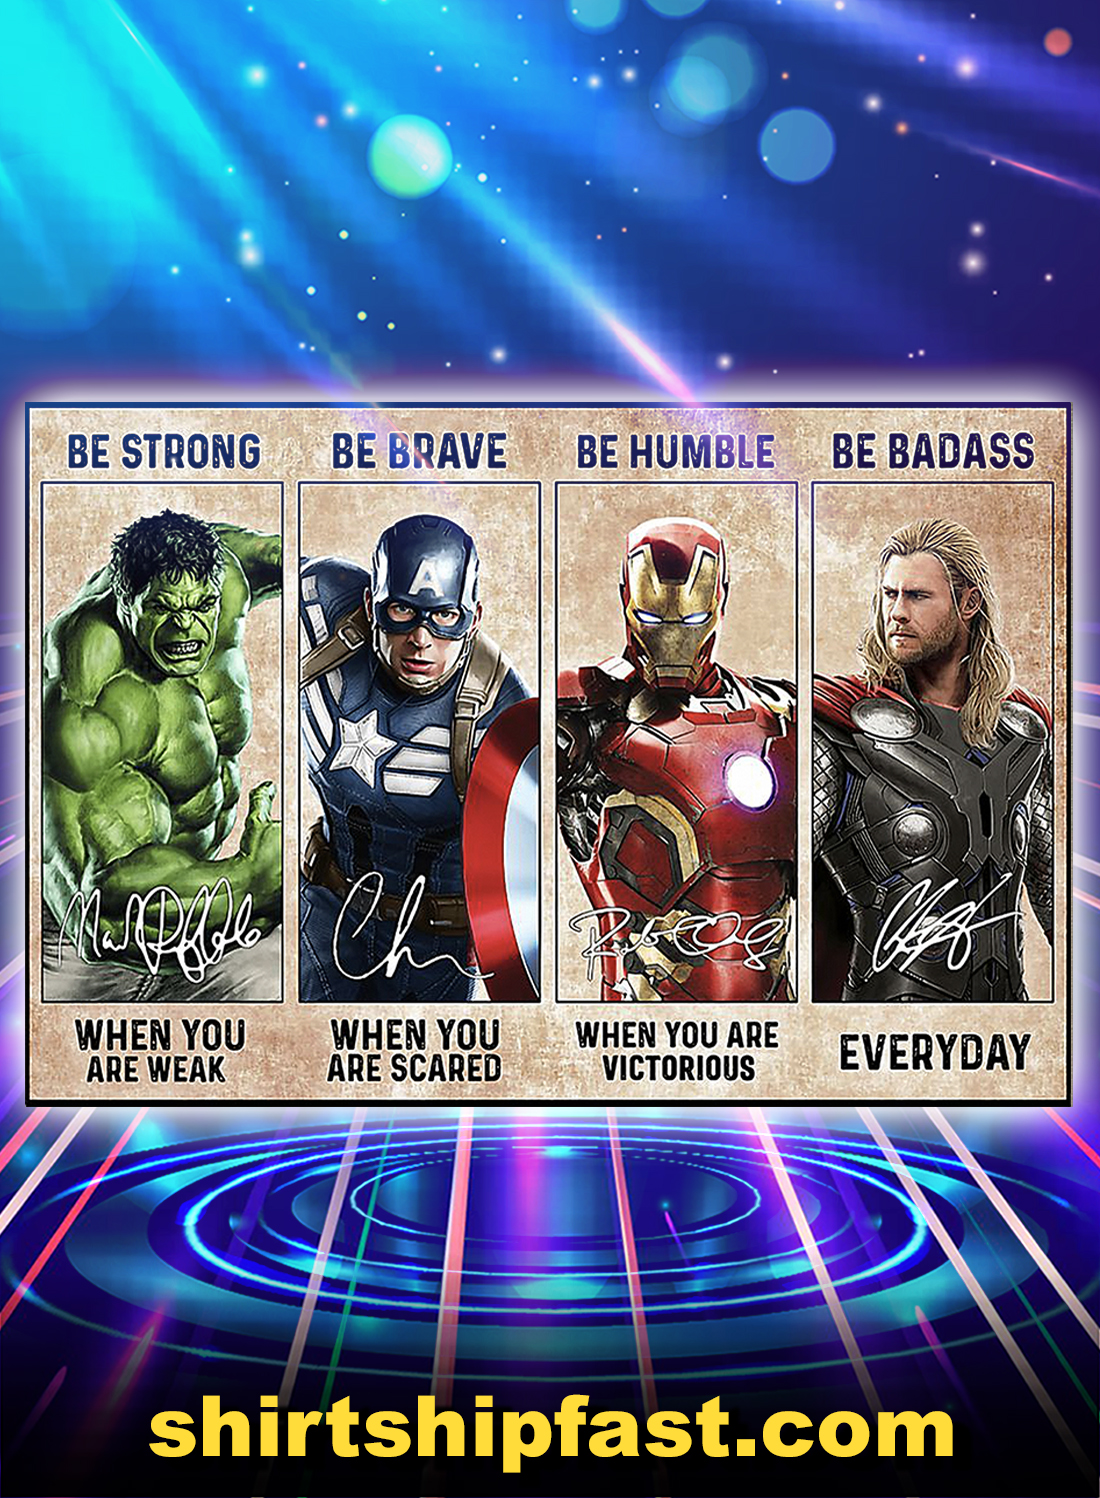 Avengers Marvel Superheroes be strong be brave be humble be badass poster - A4